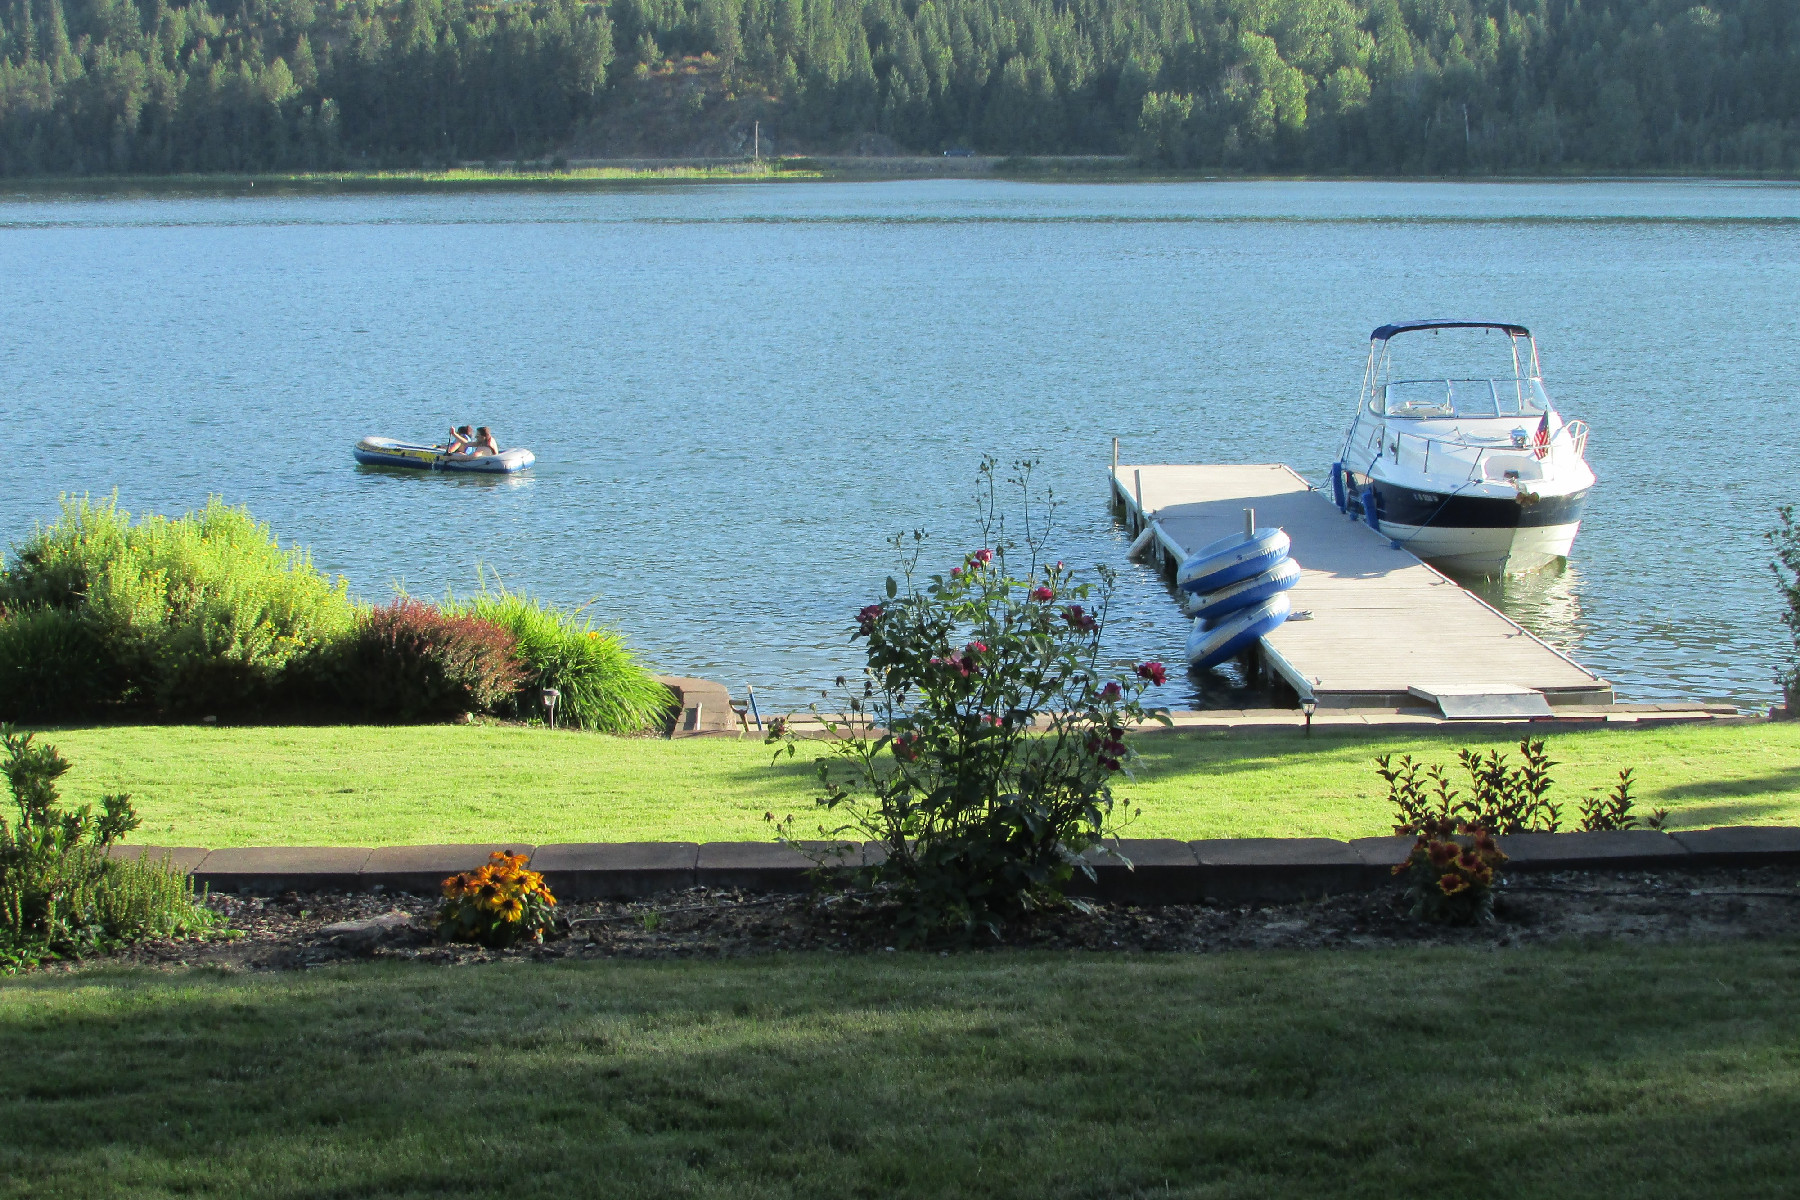 Single Family Home for Active at Made for Enjoying the Outdoors! 38 E Shore Priest River, Idaho 83856 United States